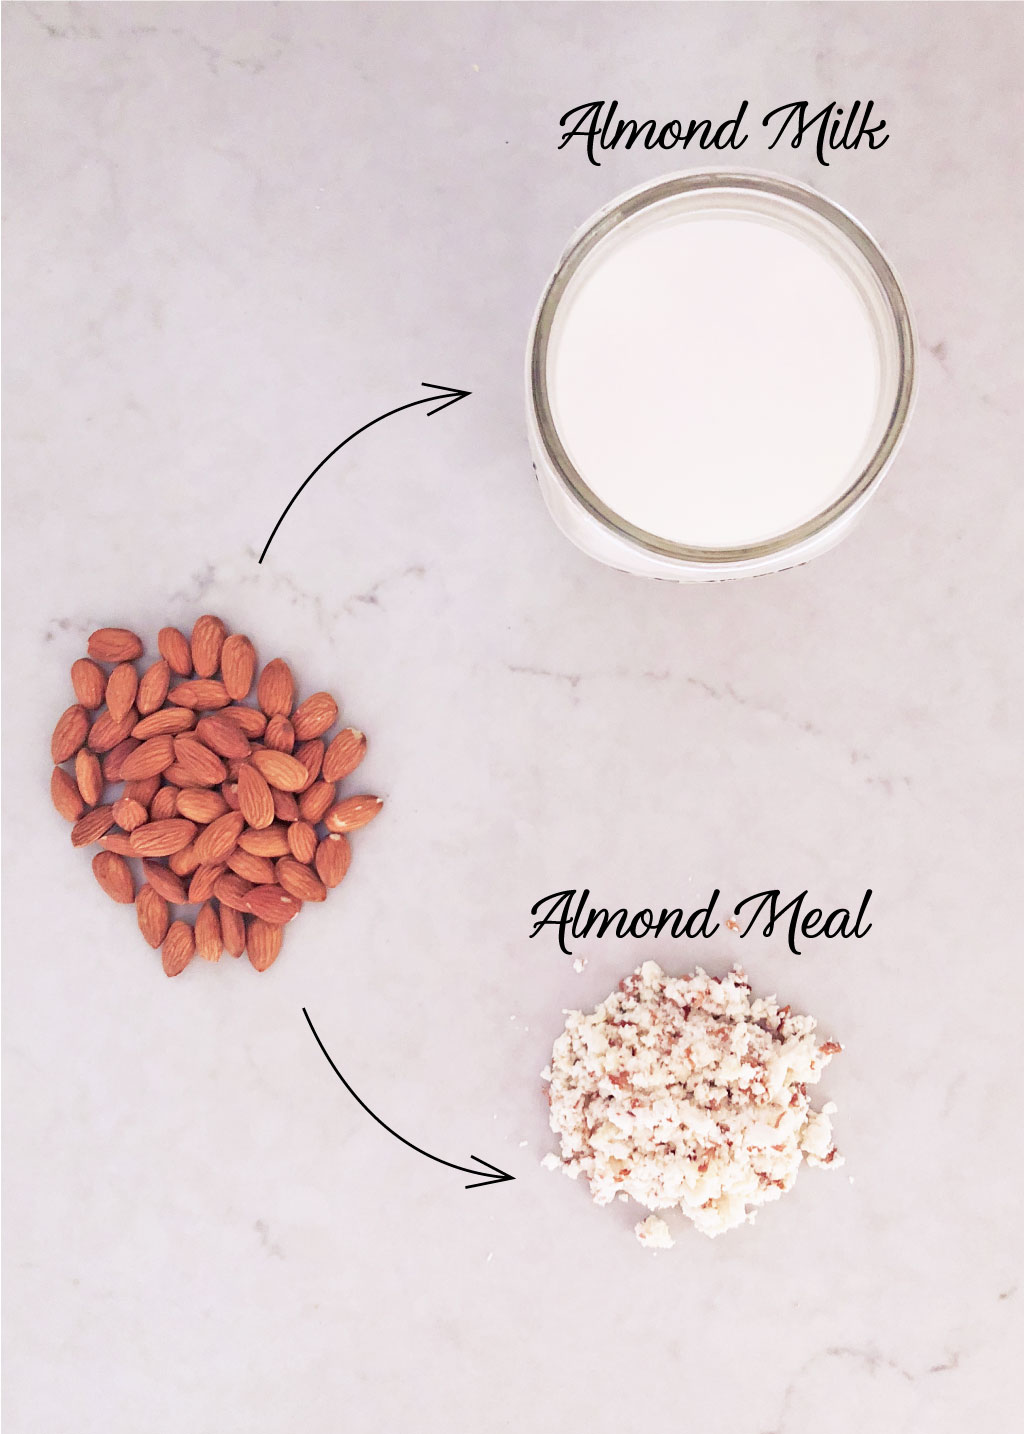 Almond Milk and Almond Meal come from 1 cup of Almonds